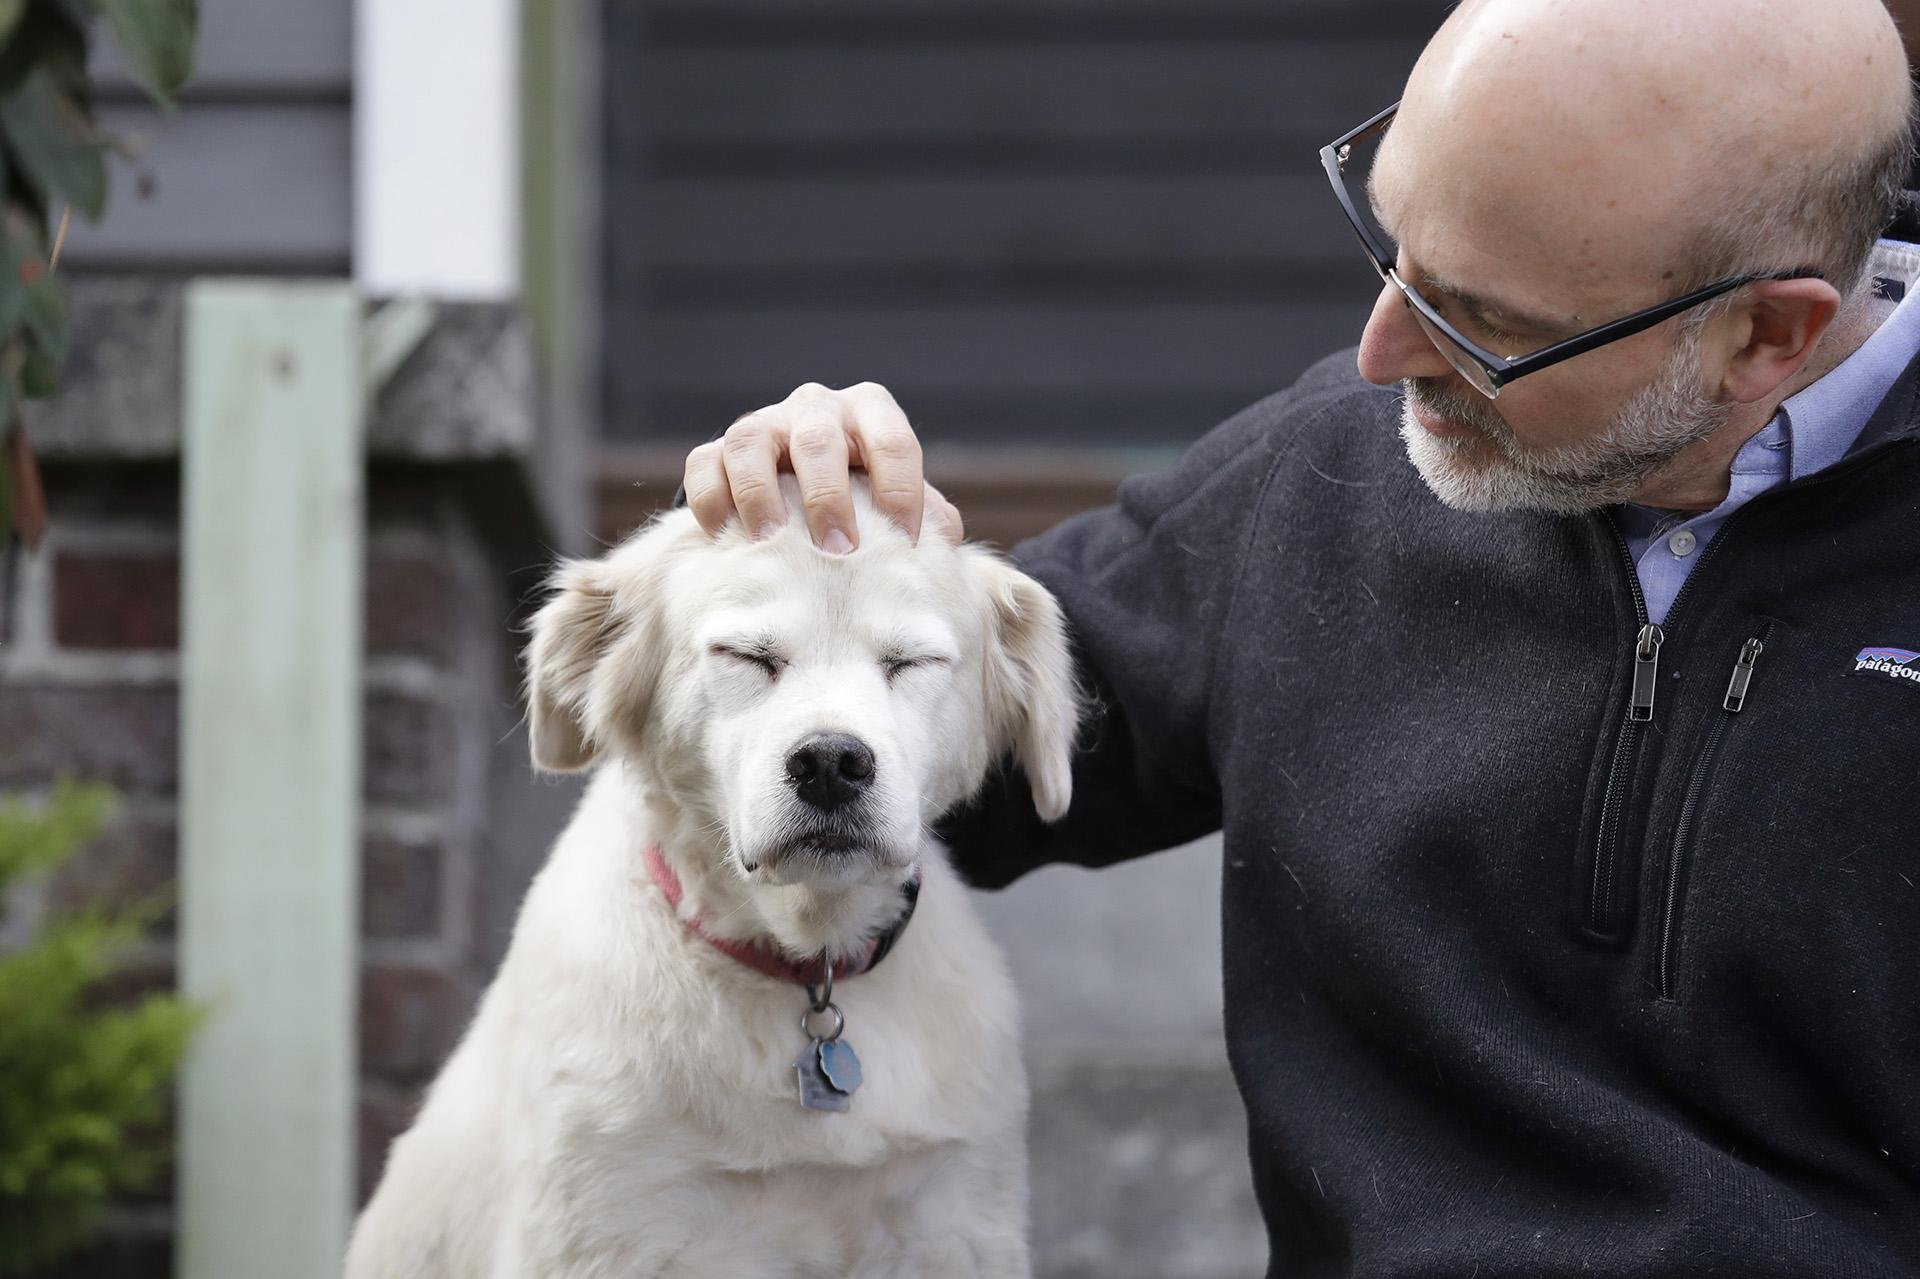 In this Monday, Nov. 11, 2019 photo, University of Washington School of Medicine researcher Daniel Promislow, the principal investigator of the Dog Aging Project grant, rubs the head of his elderly dog Frisbee at their home in Seattle. (AP Photo / Elaine Thompson)